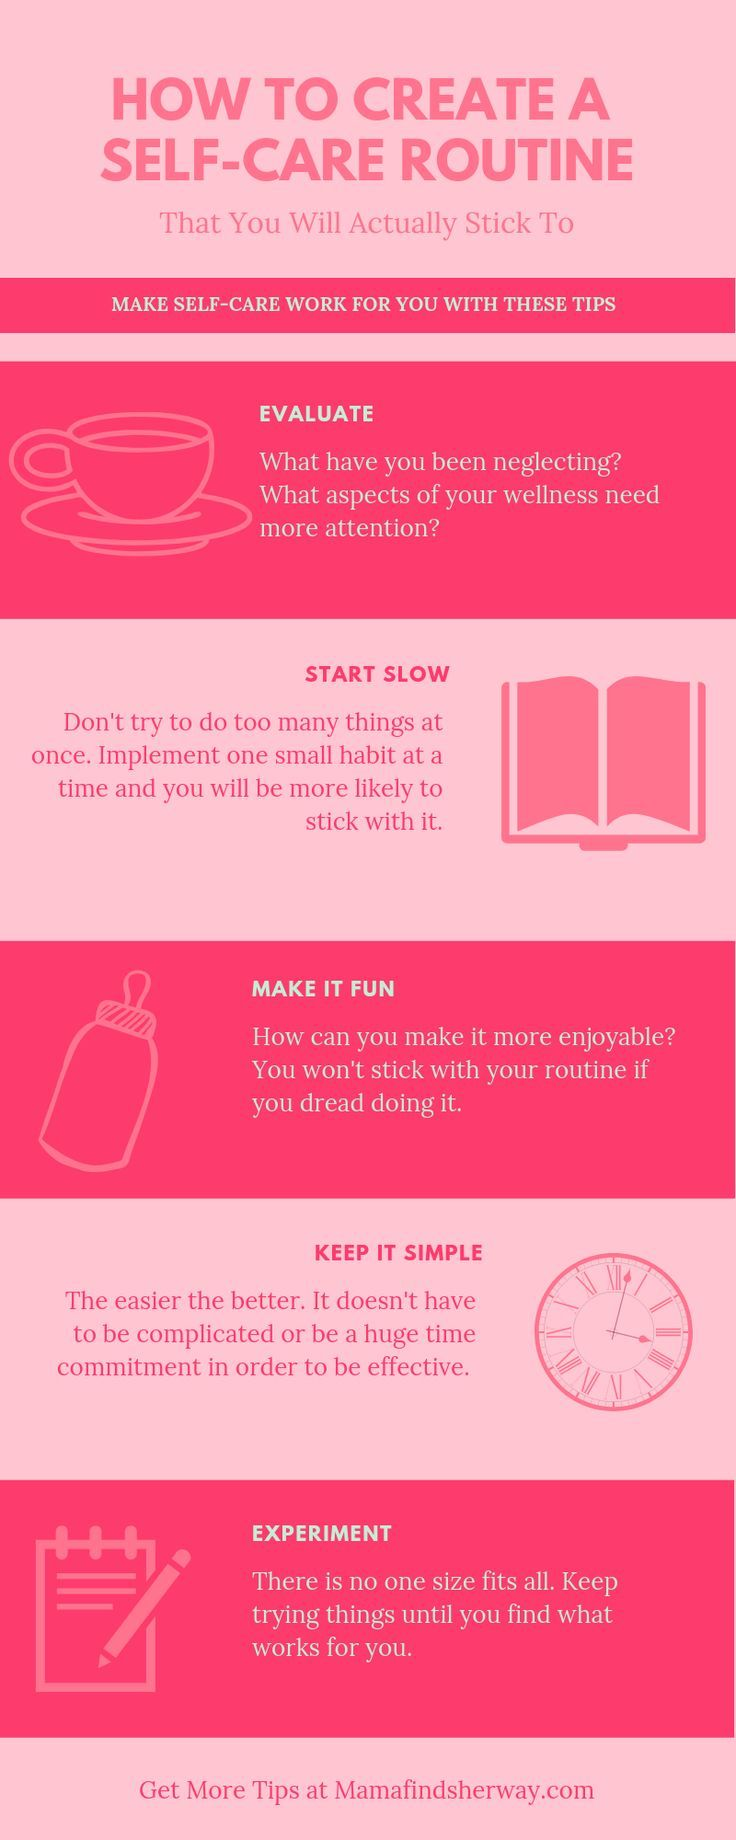 How To Create A SelfCare Routine That Works For You